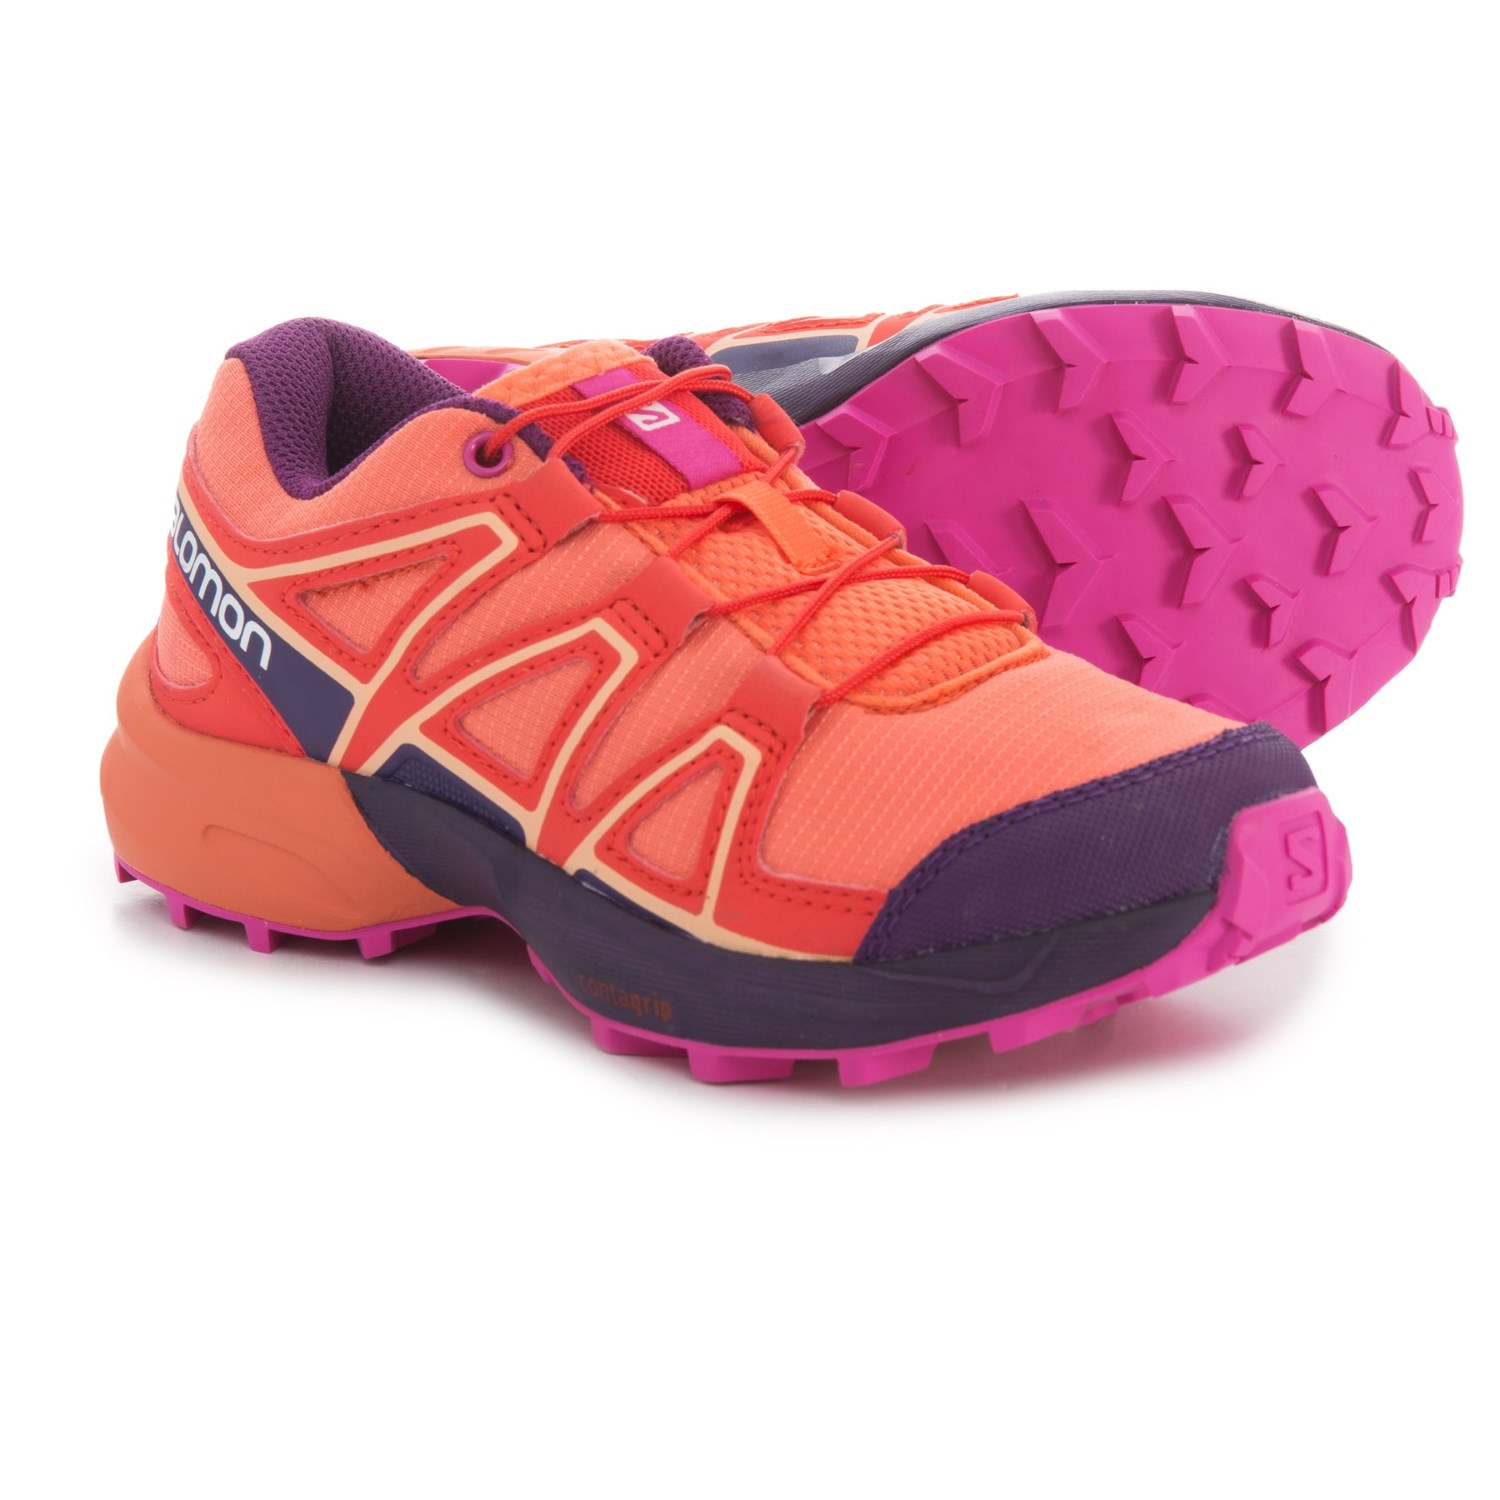 6647b4274140 Salomon Speedcross Trail Running Shoes (For Kids) in Living Coral Acai Rose